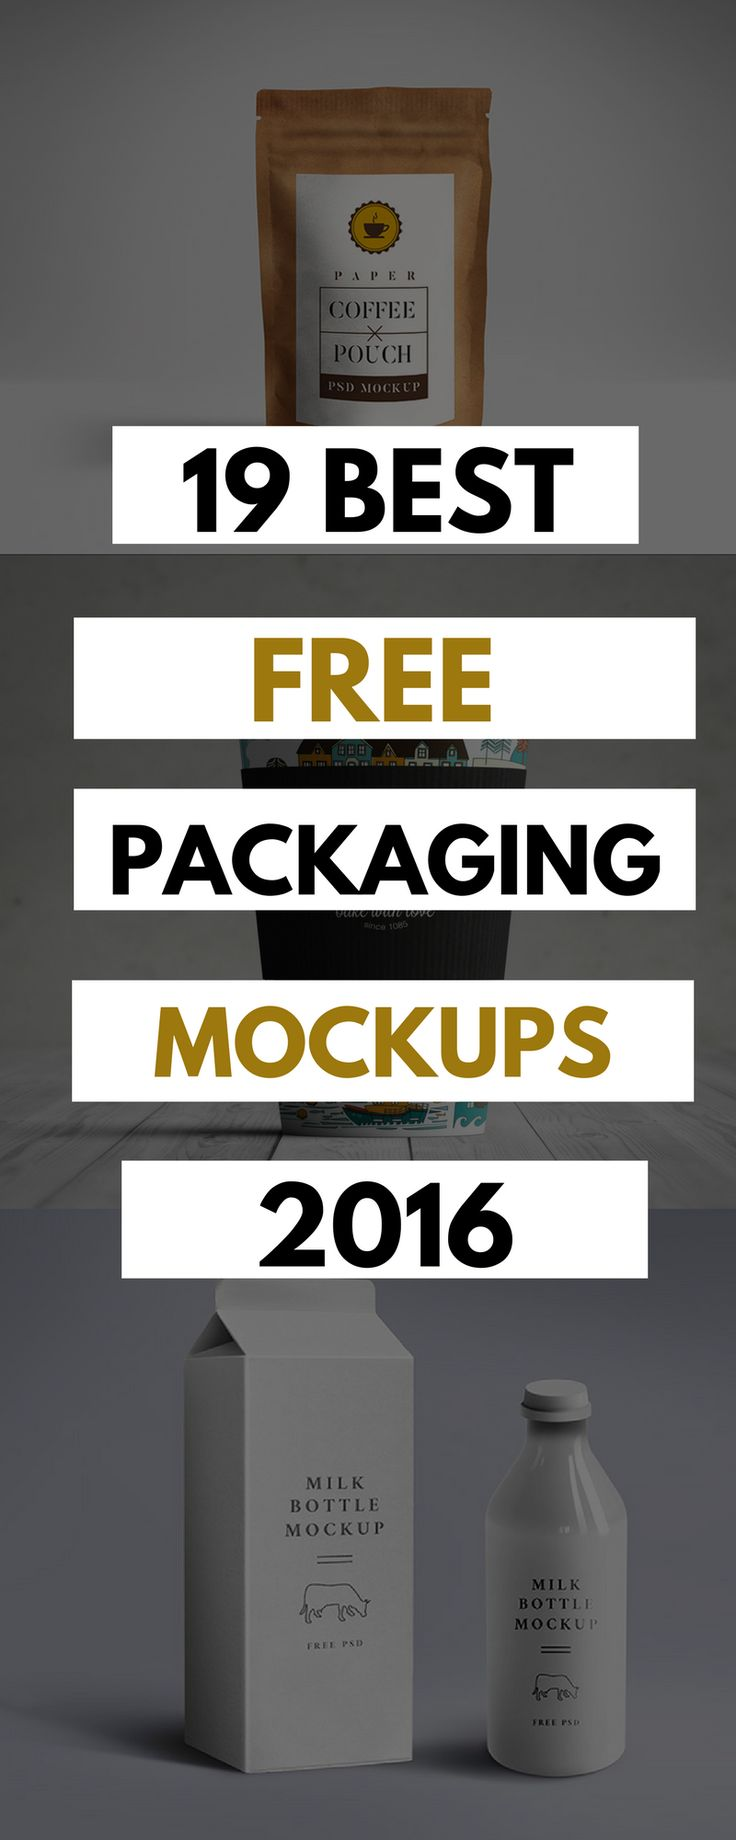 download 19 of the best free packaging mockups of 2016